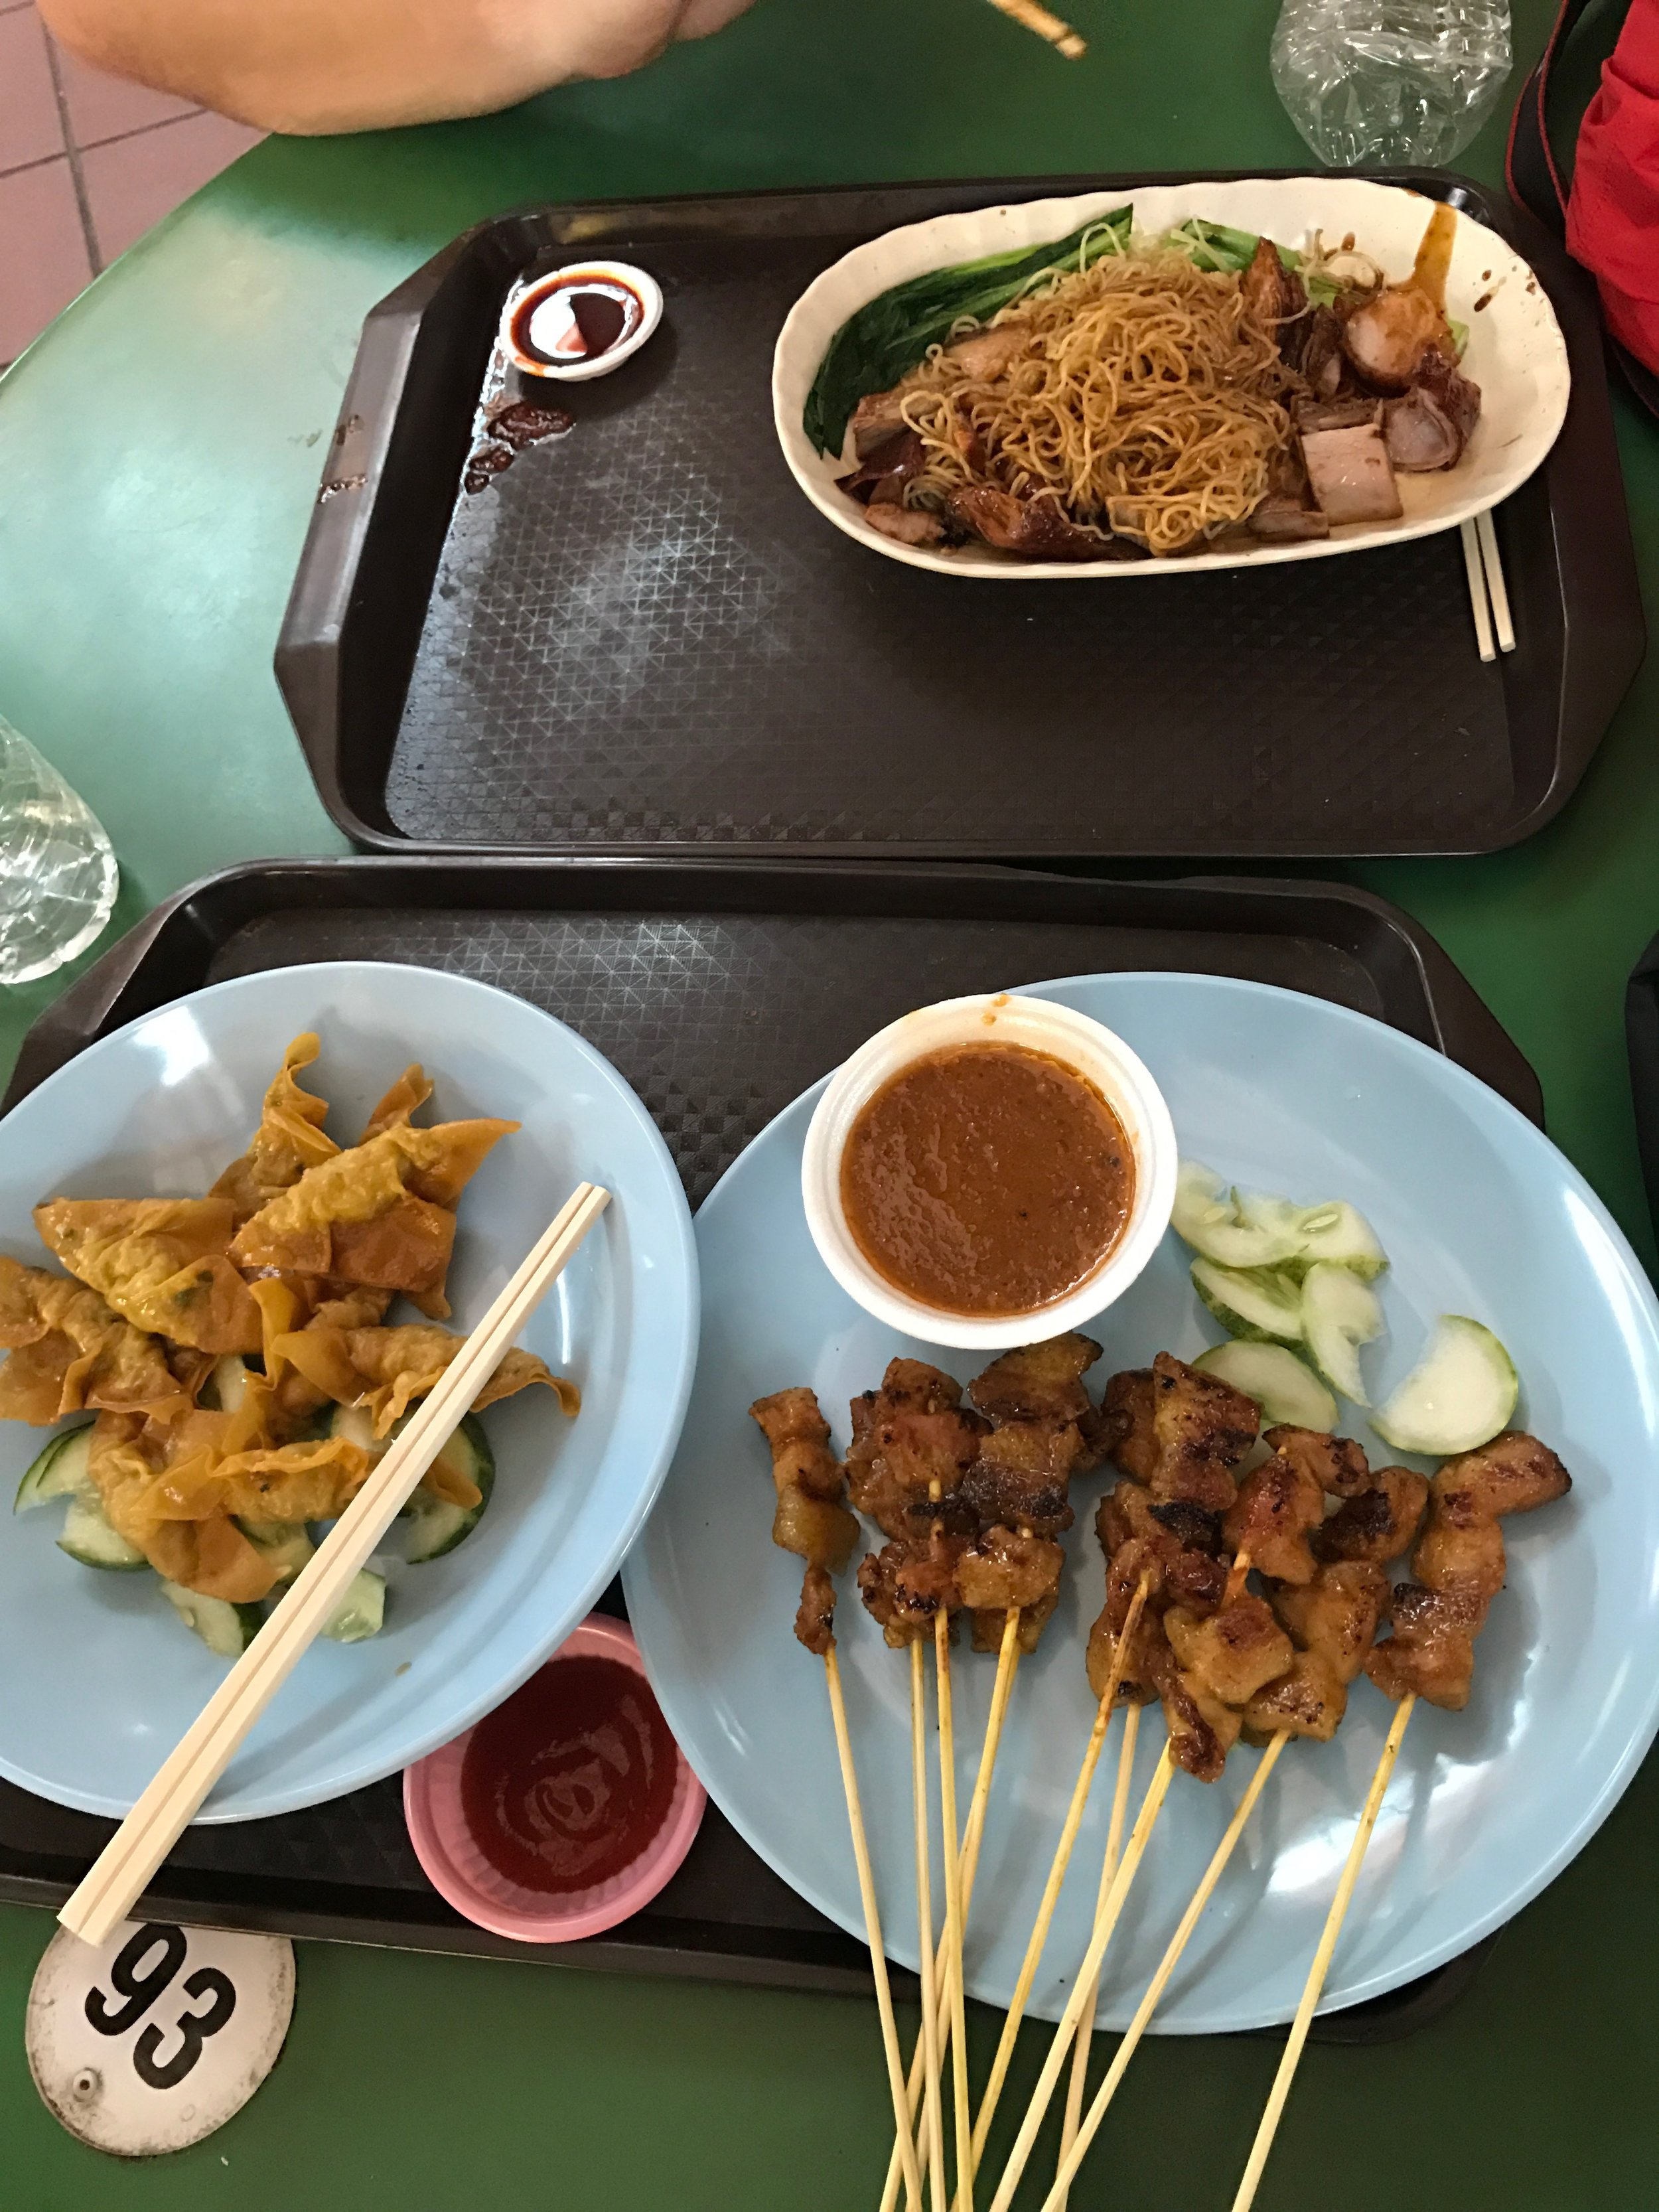 chicken satay with peanut sauce + fried wantons + duck noodles = a super inexpensive but amazing lunch.